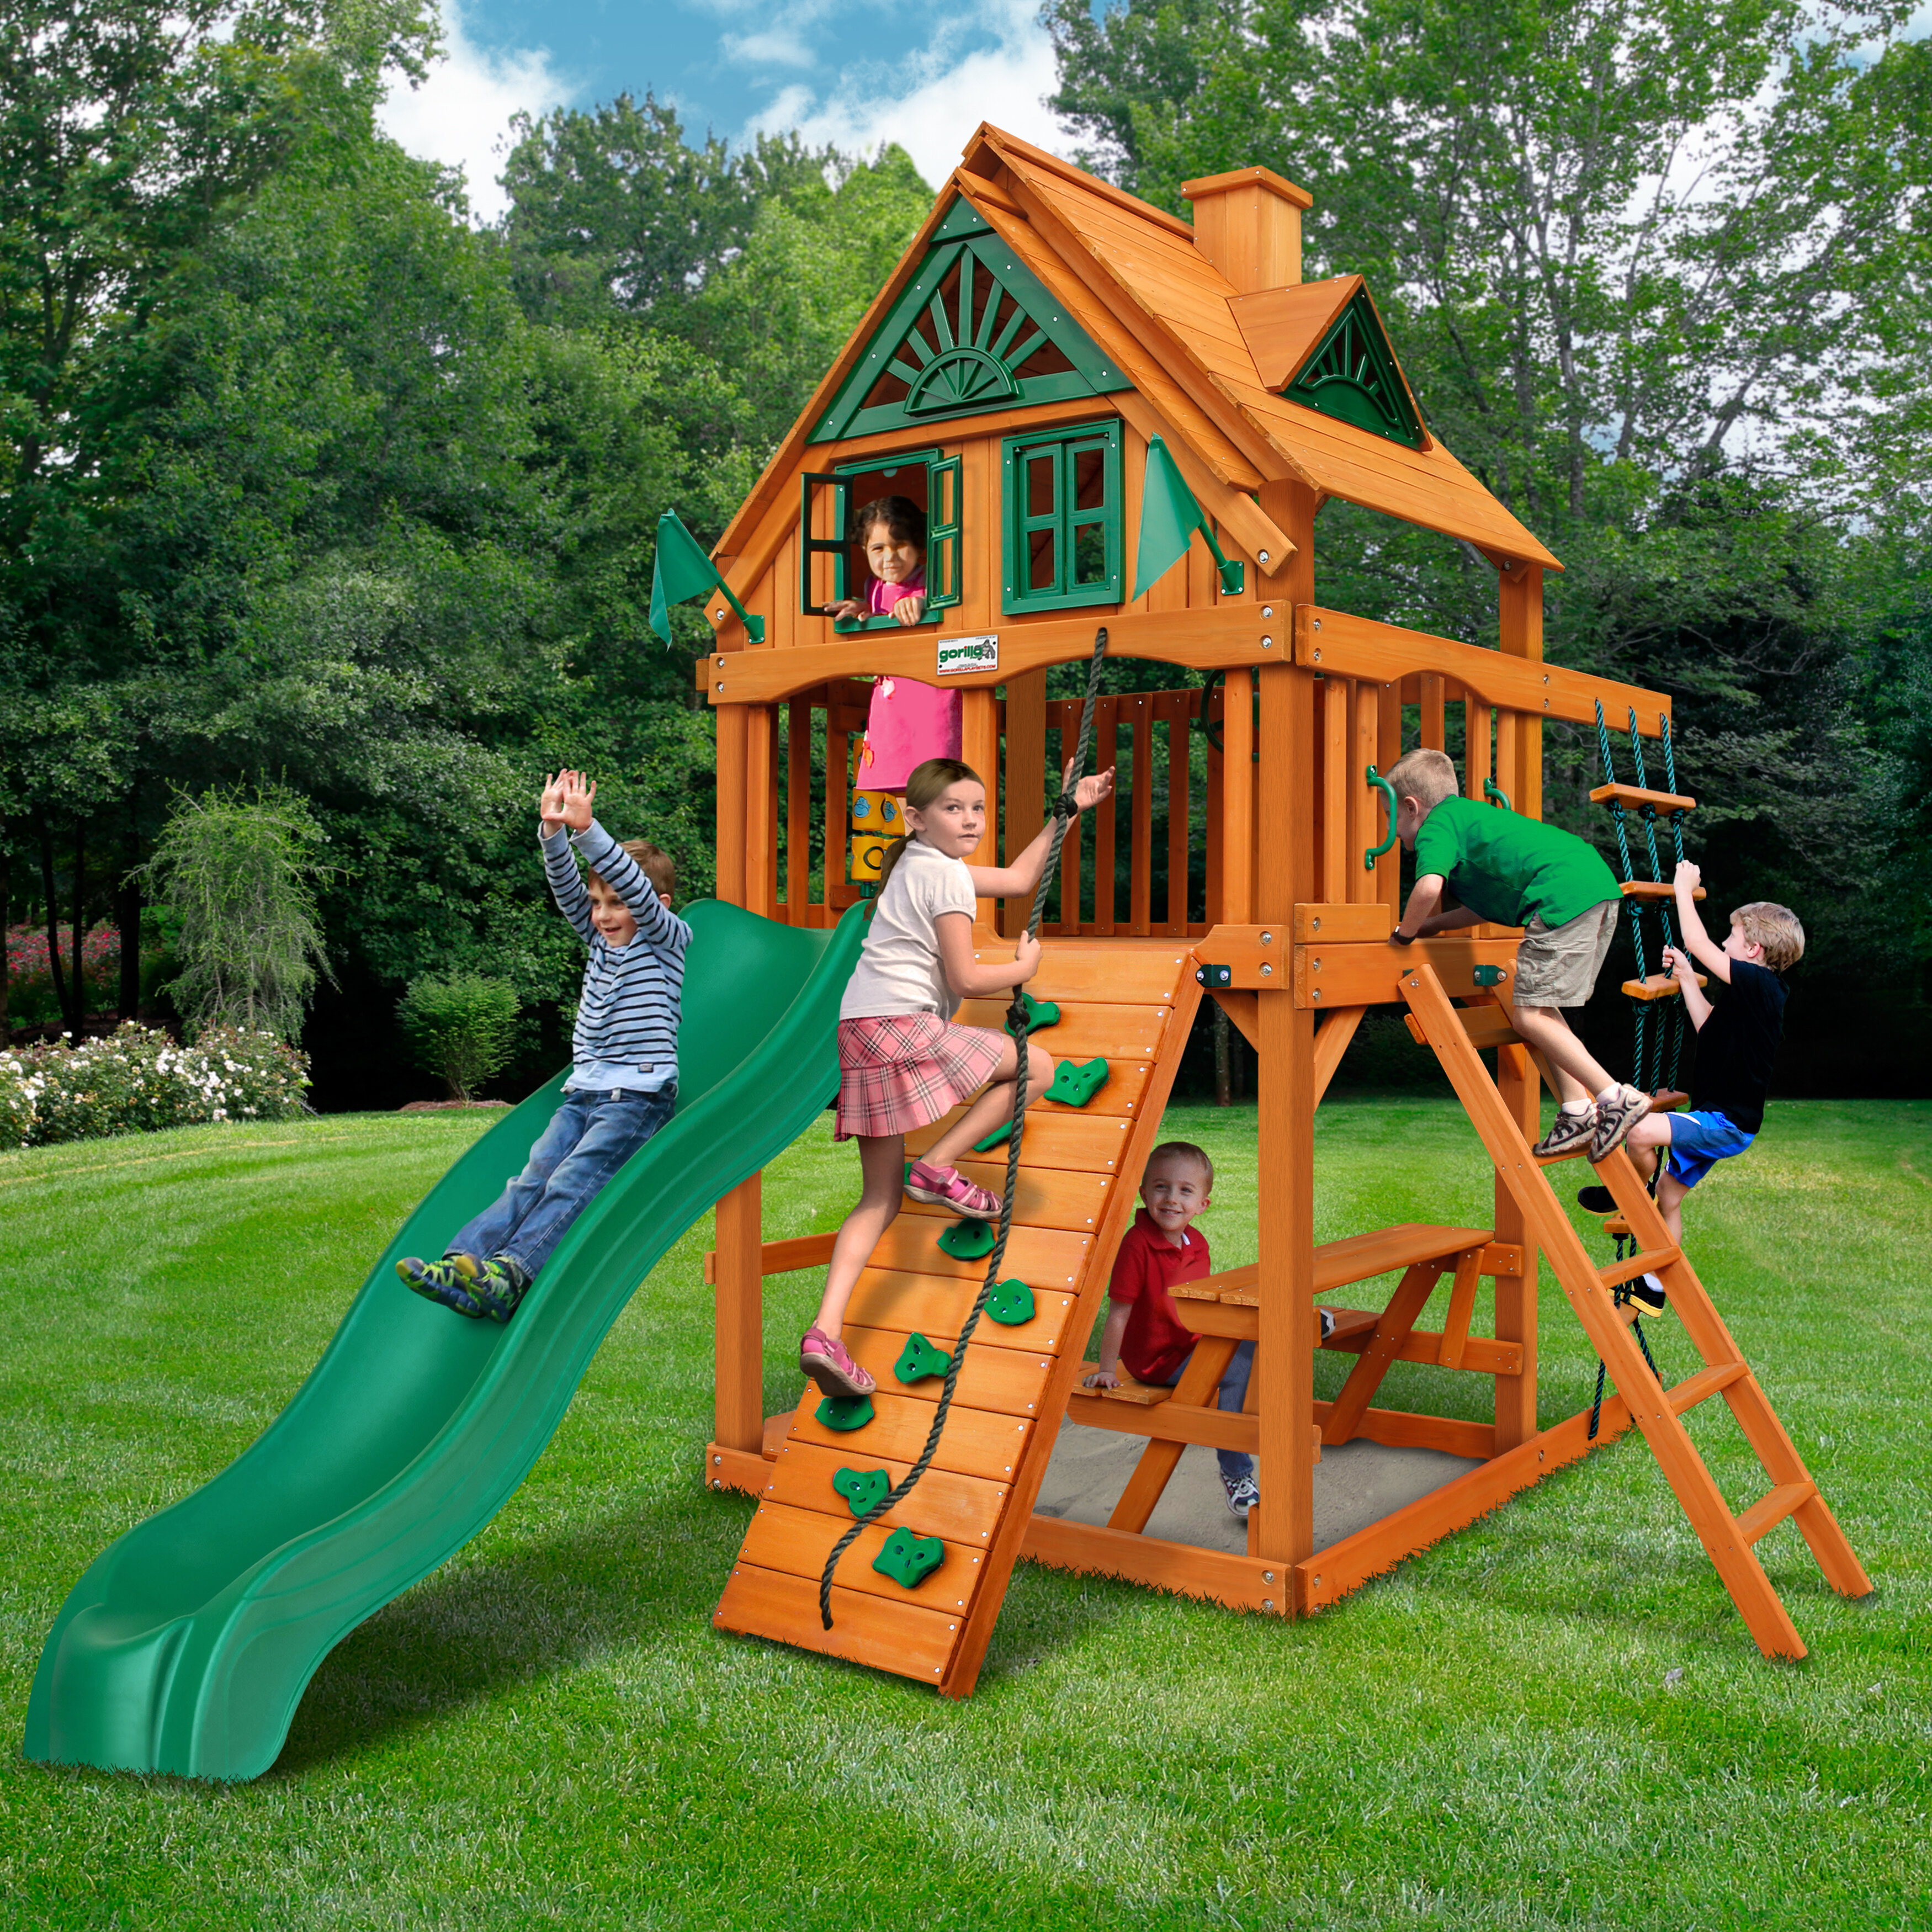 Gorilla Playsets Chateau Tower Treehouse Swing